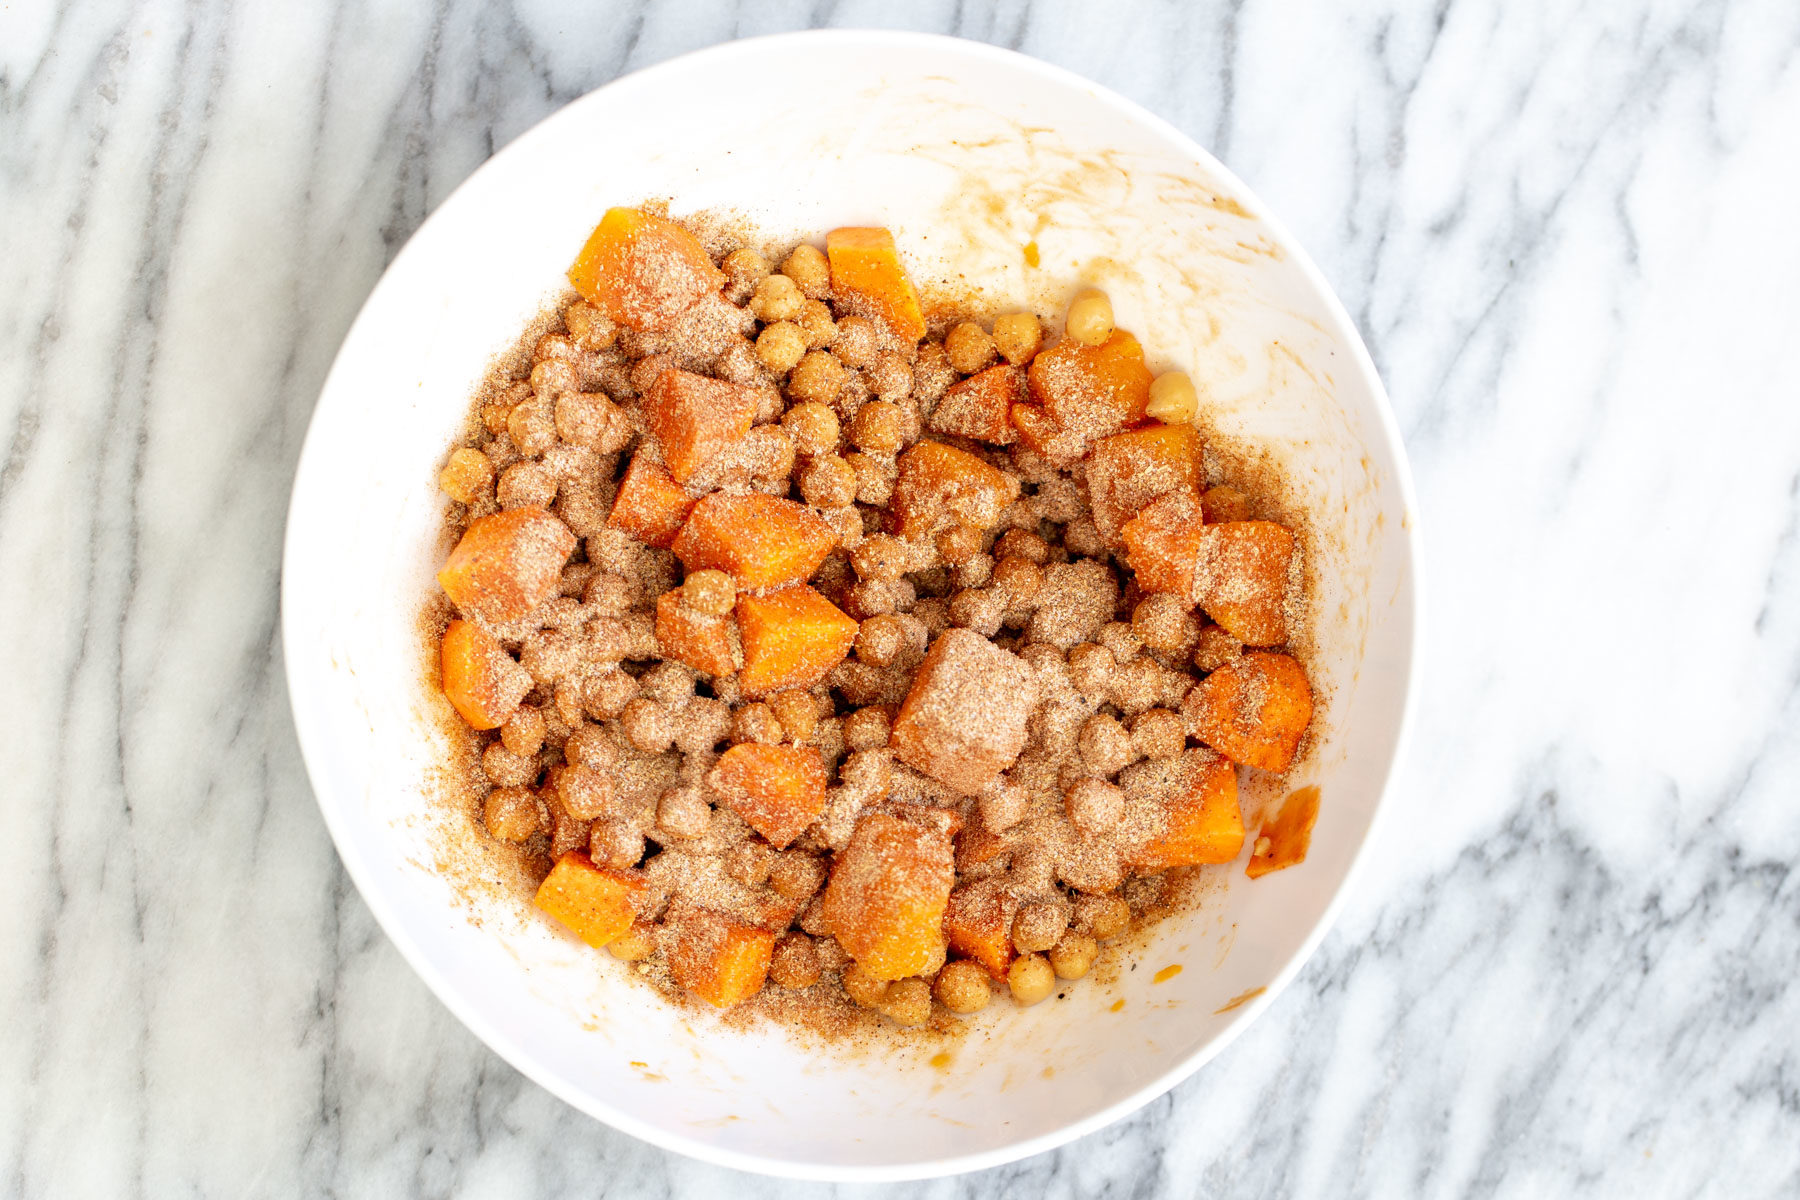 spice mix being sprinkled on top of sweet potatoes and chickpeas